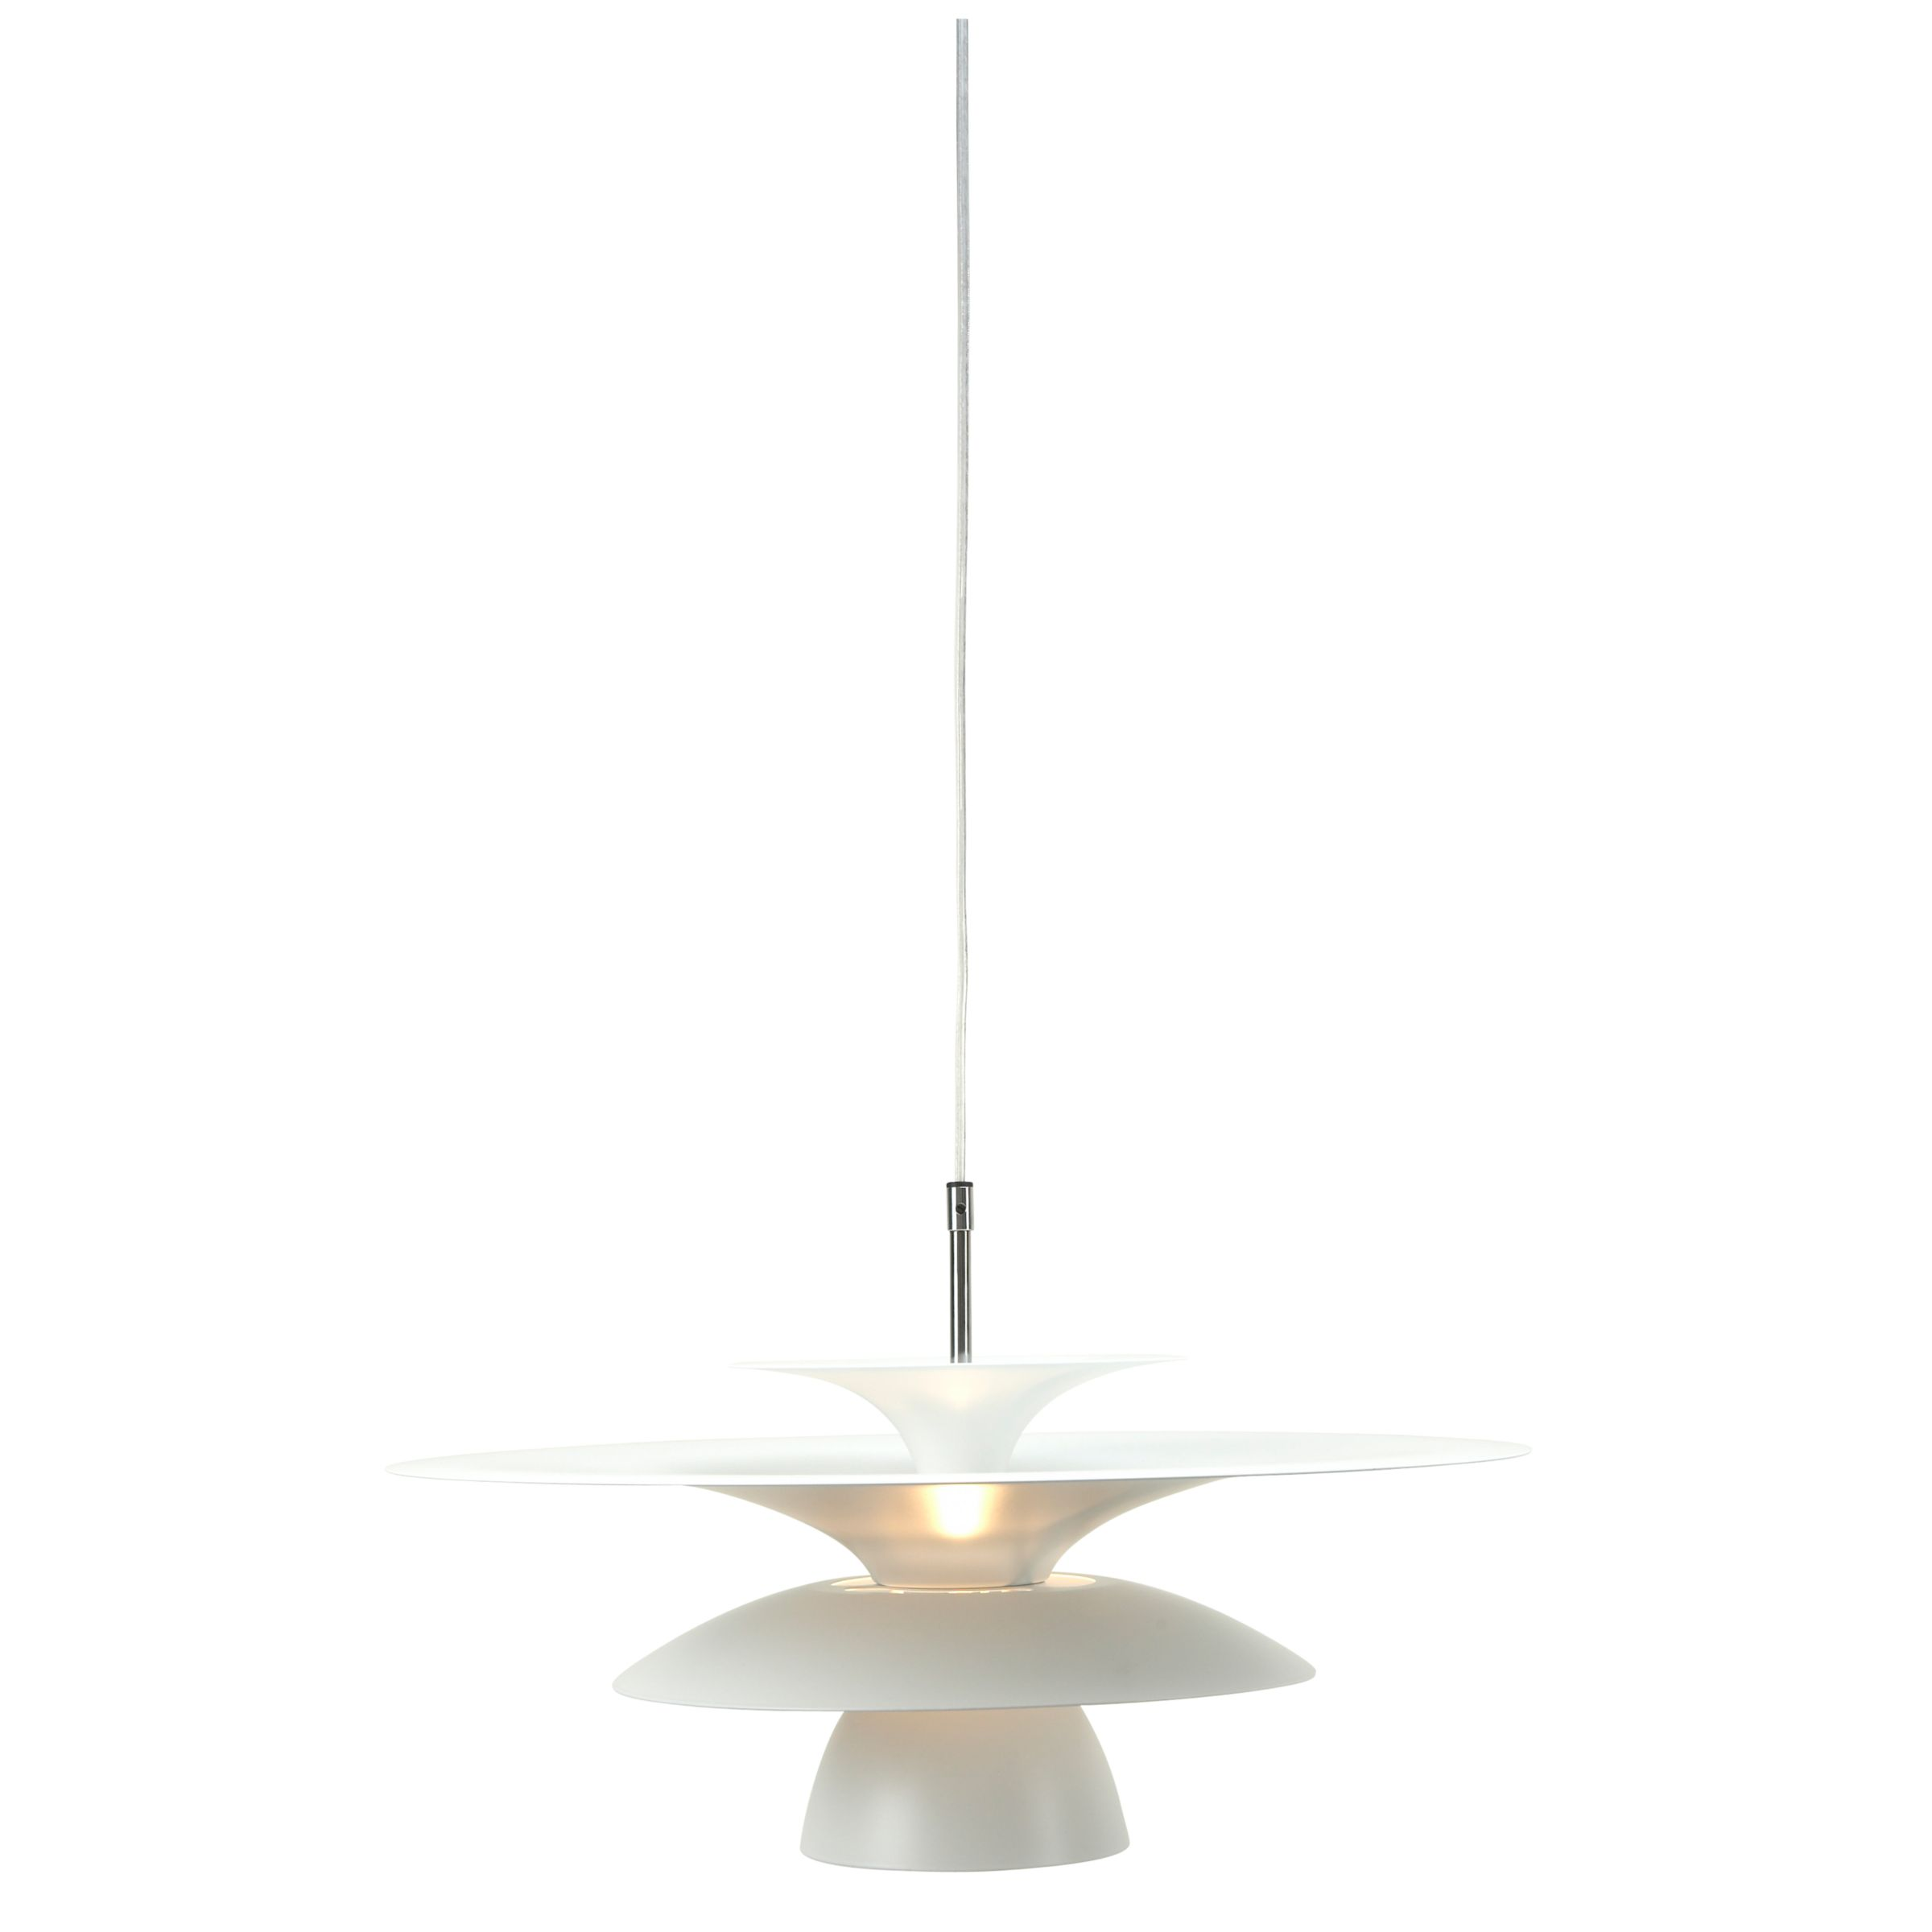 John Lewis White Ceiling Lights : John lewis picasso ceiling light review compare prices